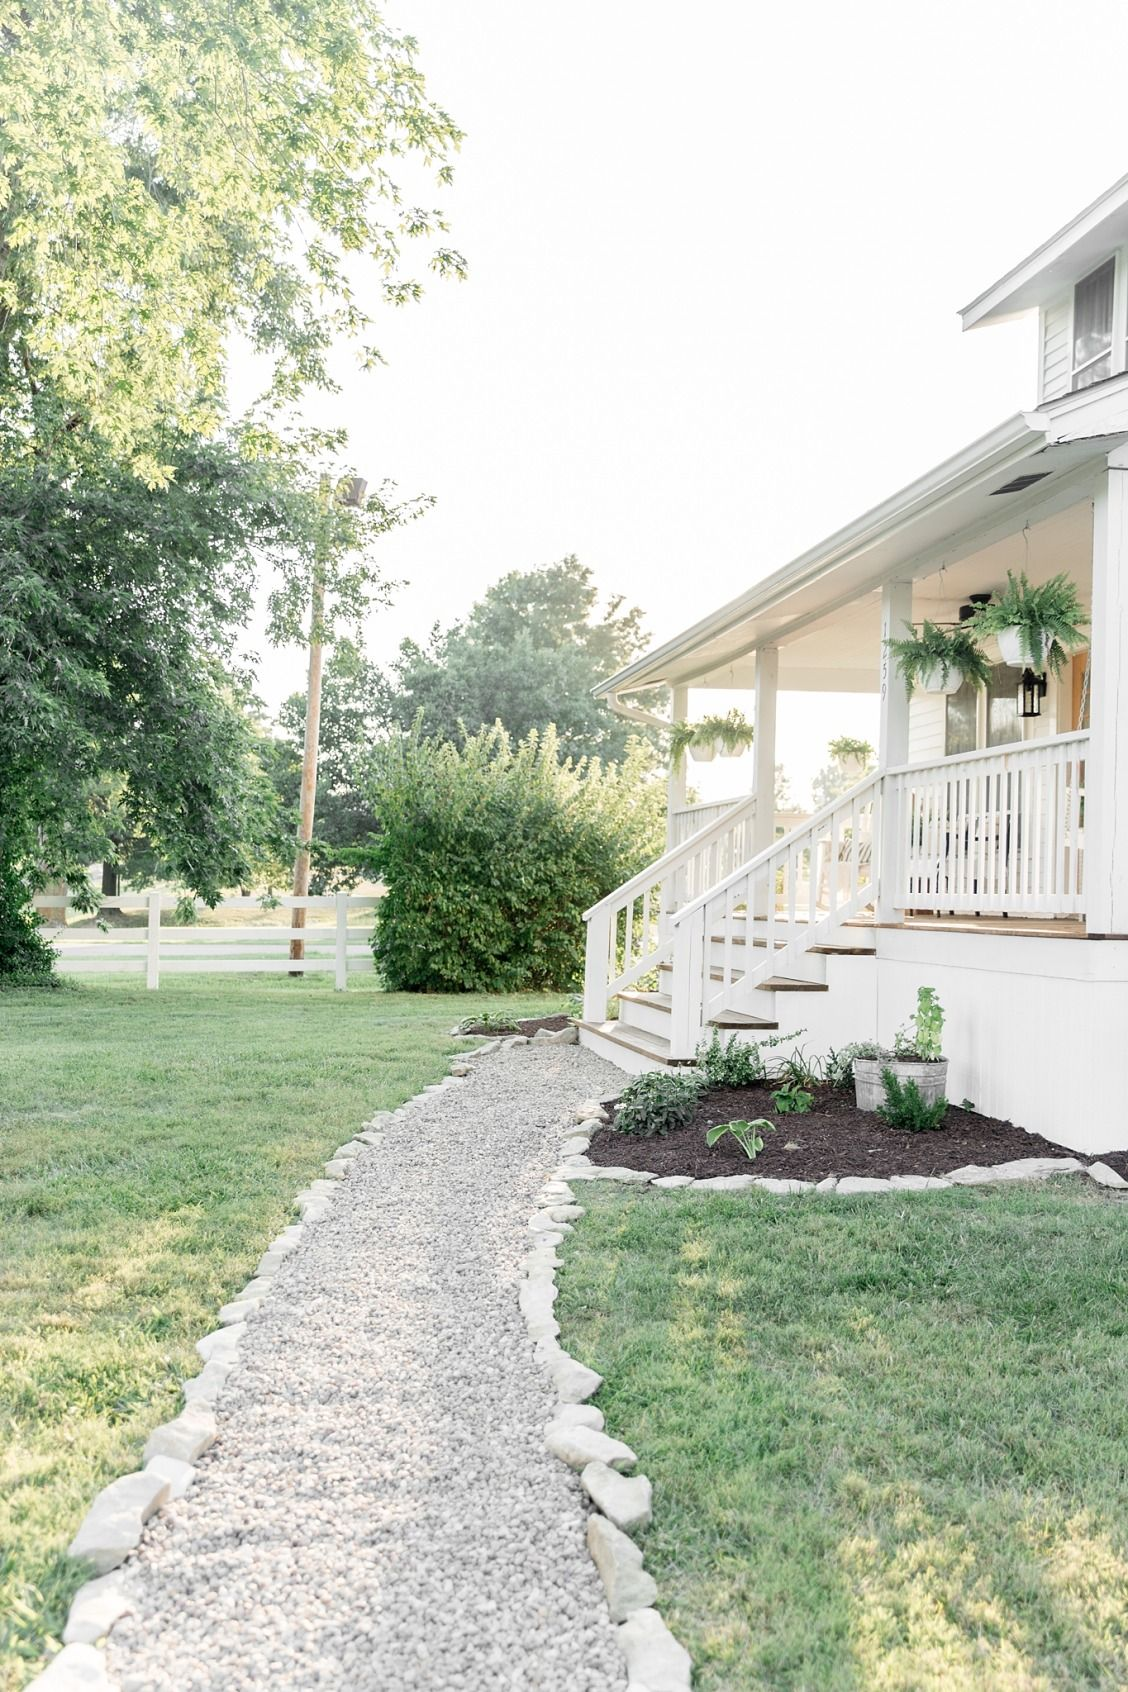 How To Update A Cracked Sidewalk With A Diy Gravel Path